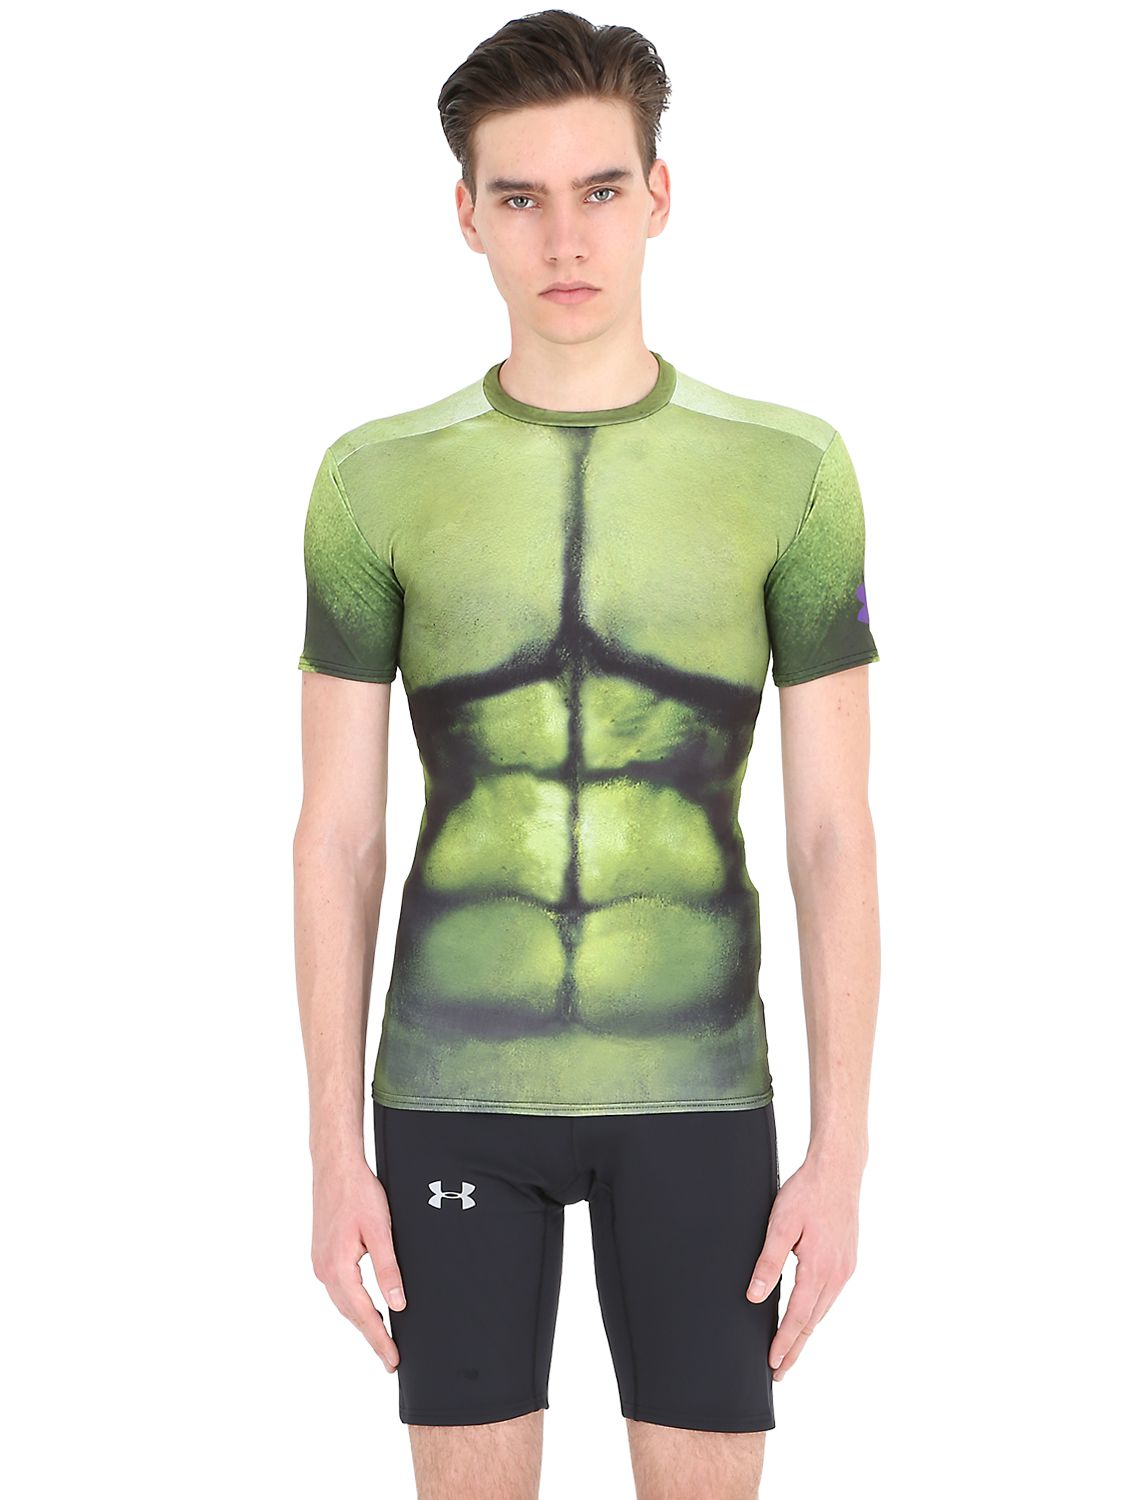 Under armour hulk compression base layer t shirt in green for Hulk under armour compression shirt